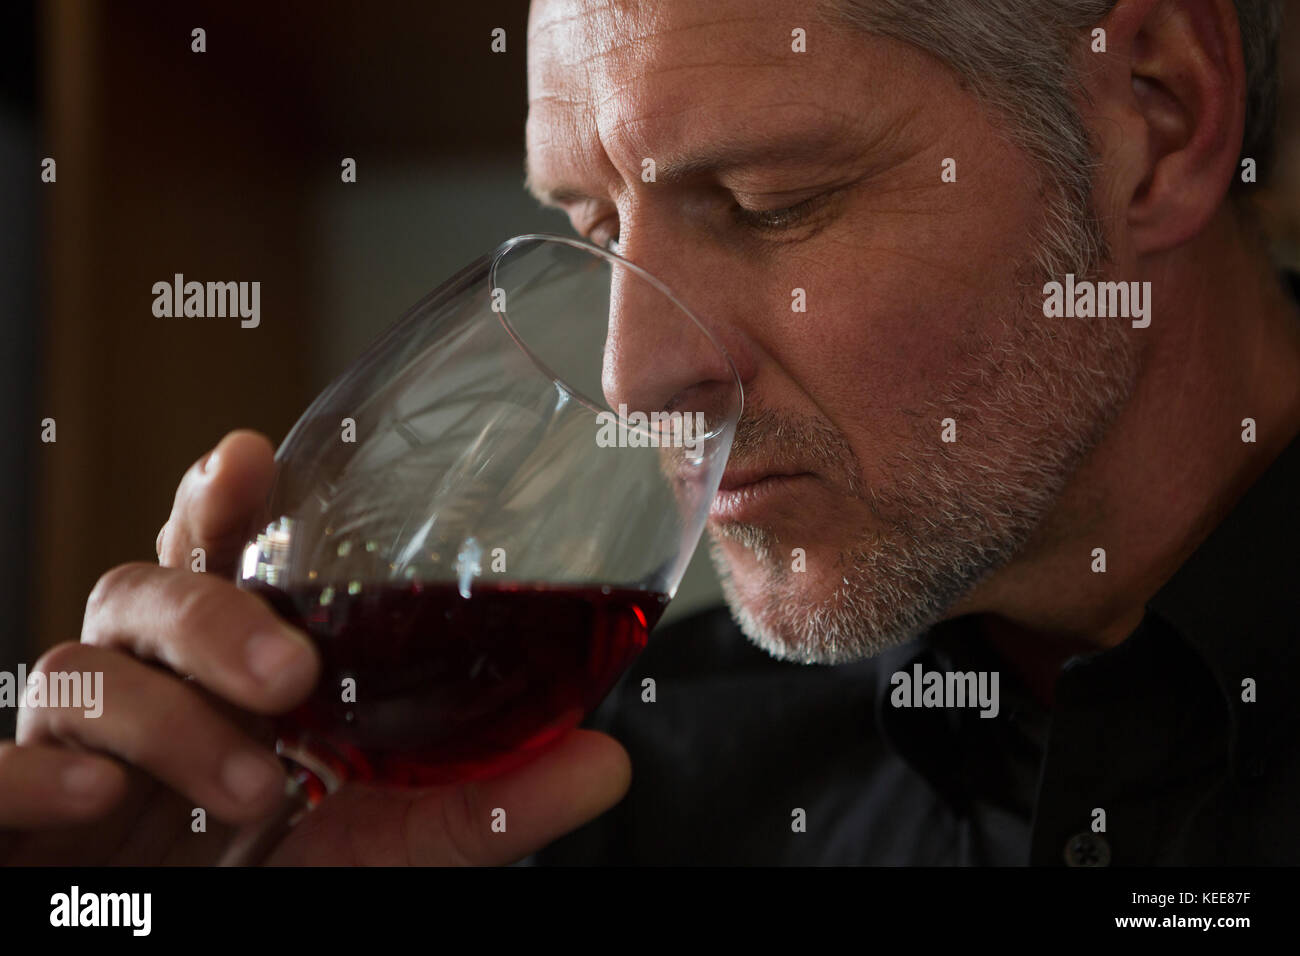 Waiter drinking wine in restaurant - Stock Image